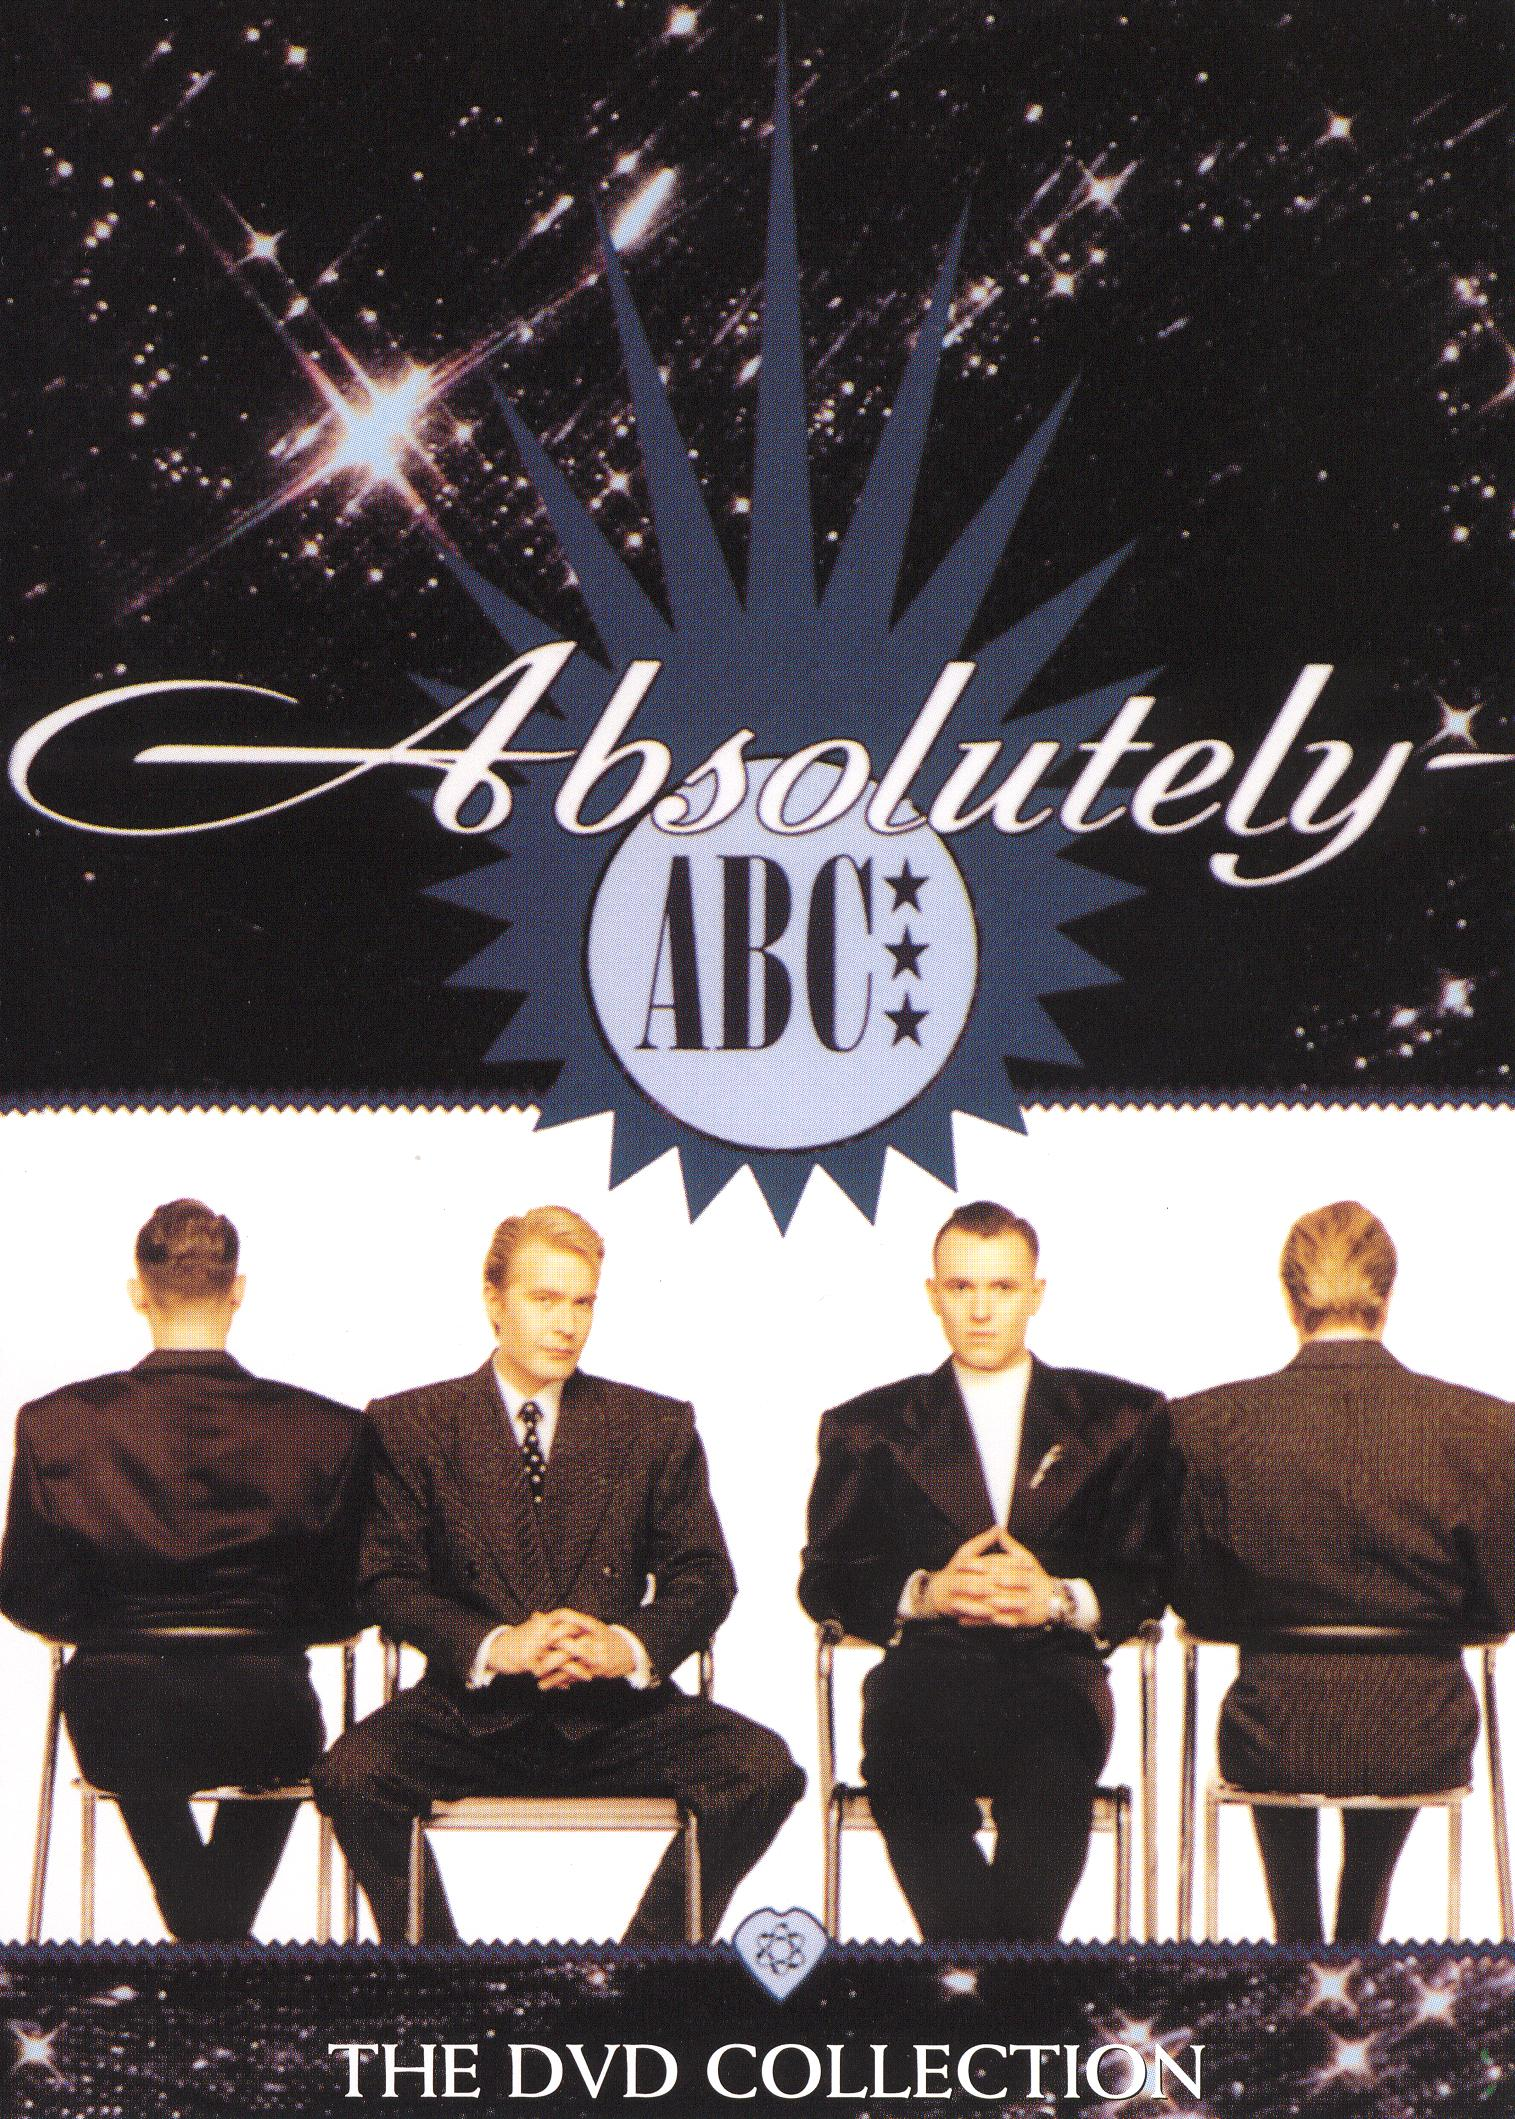 ABC: Absolutely ABC